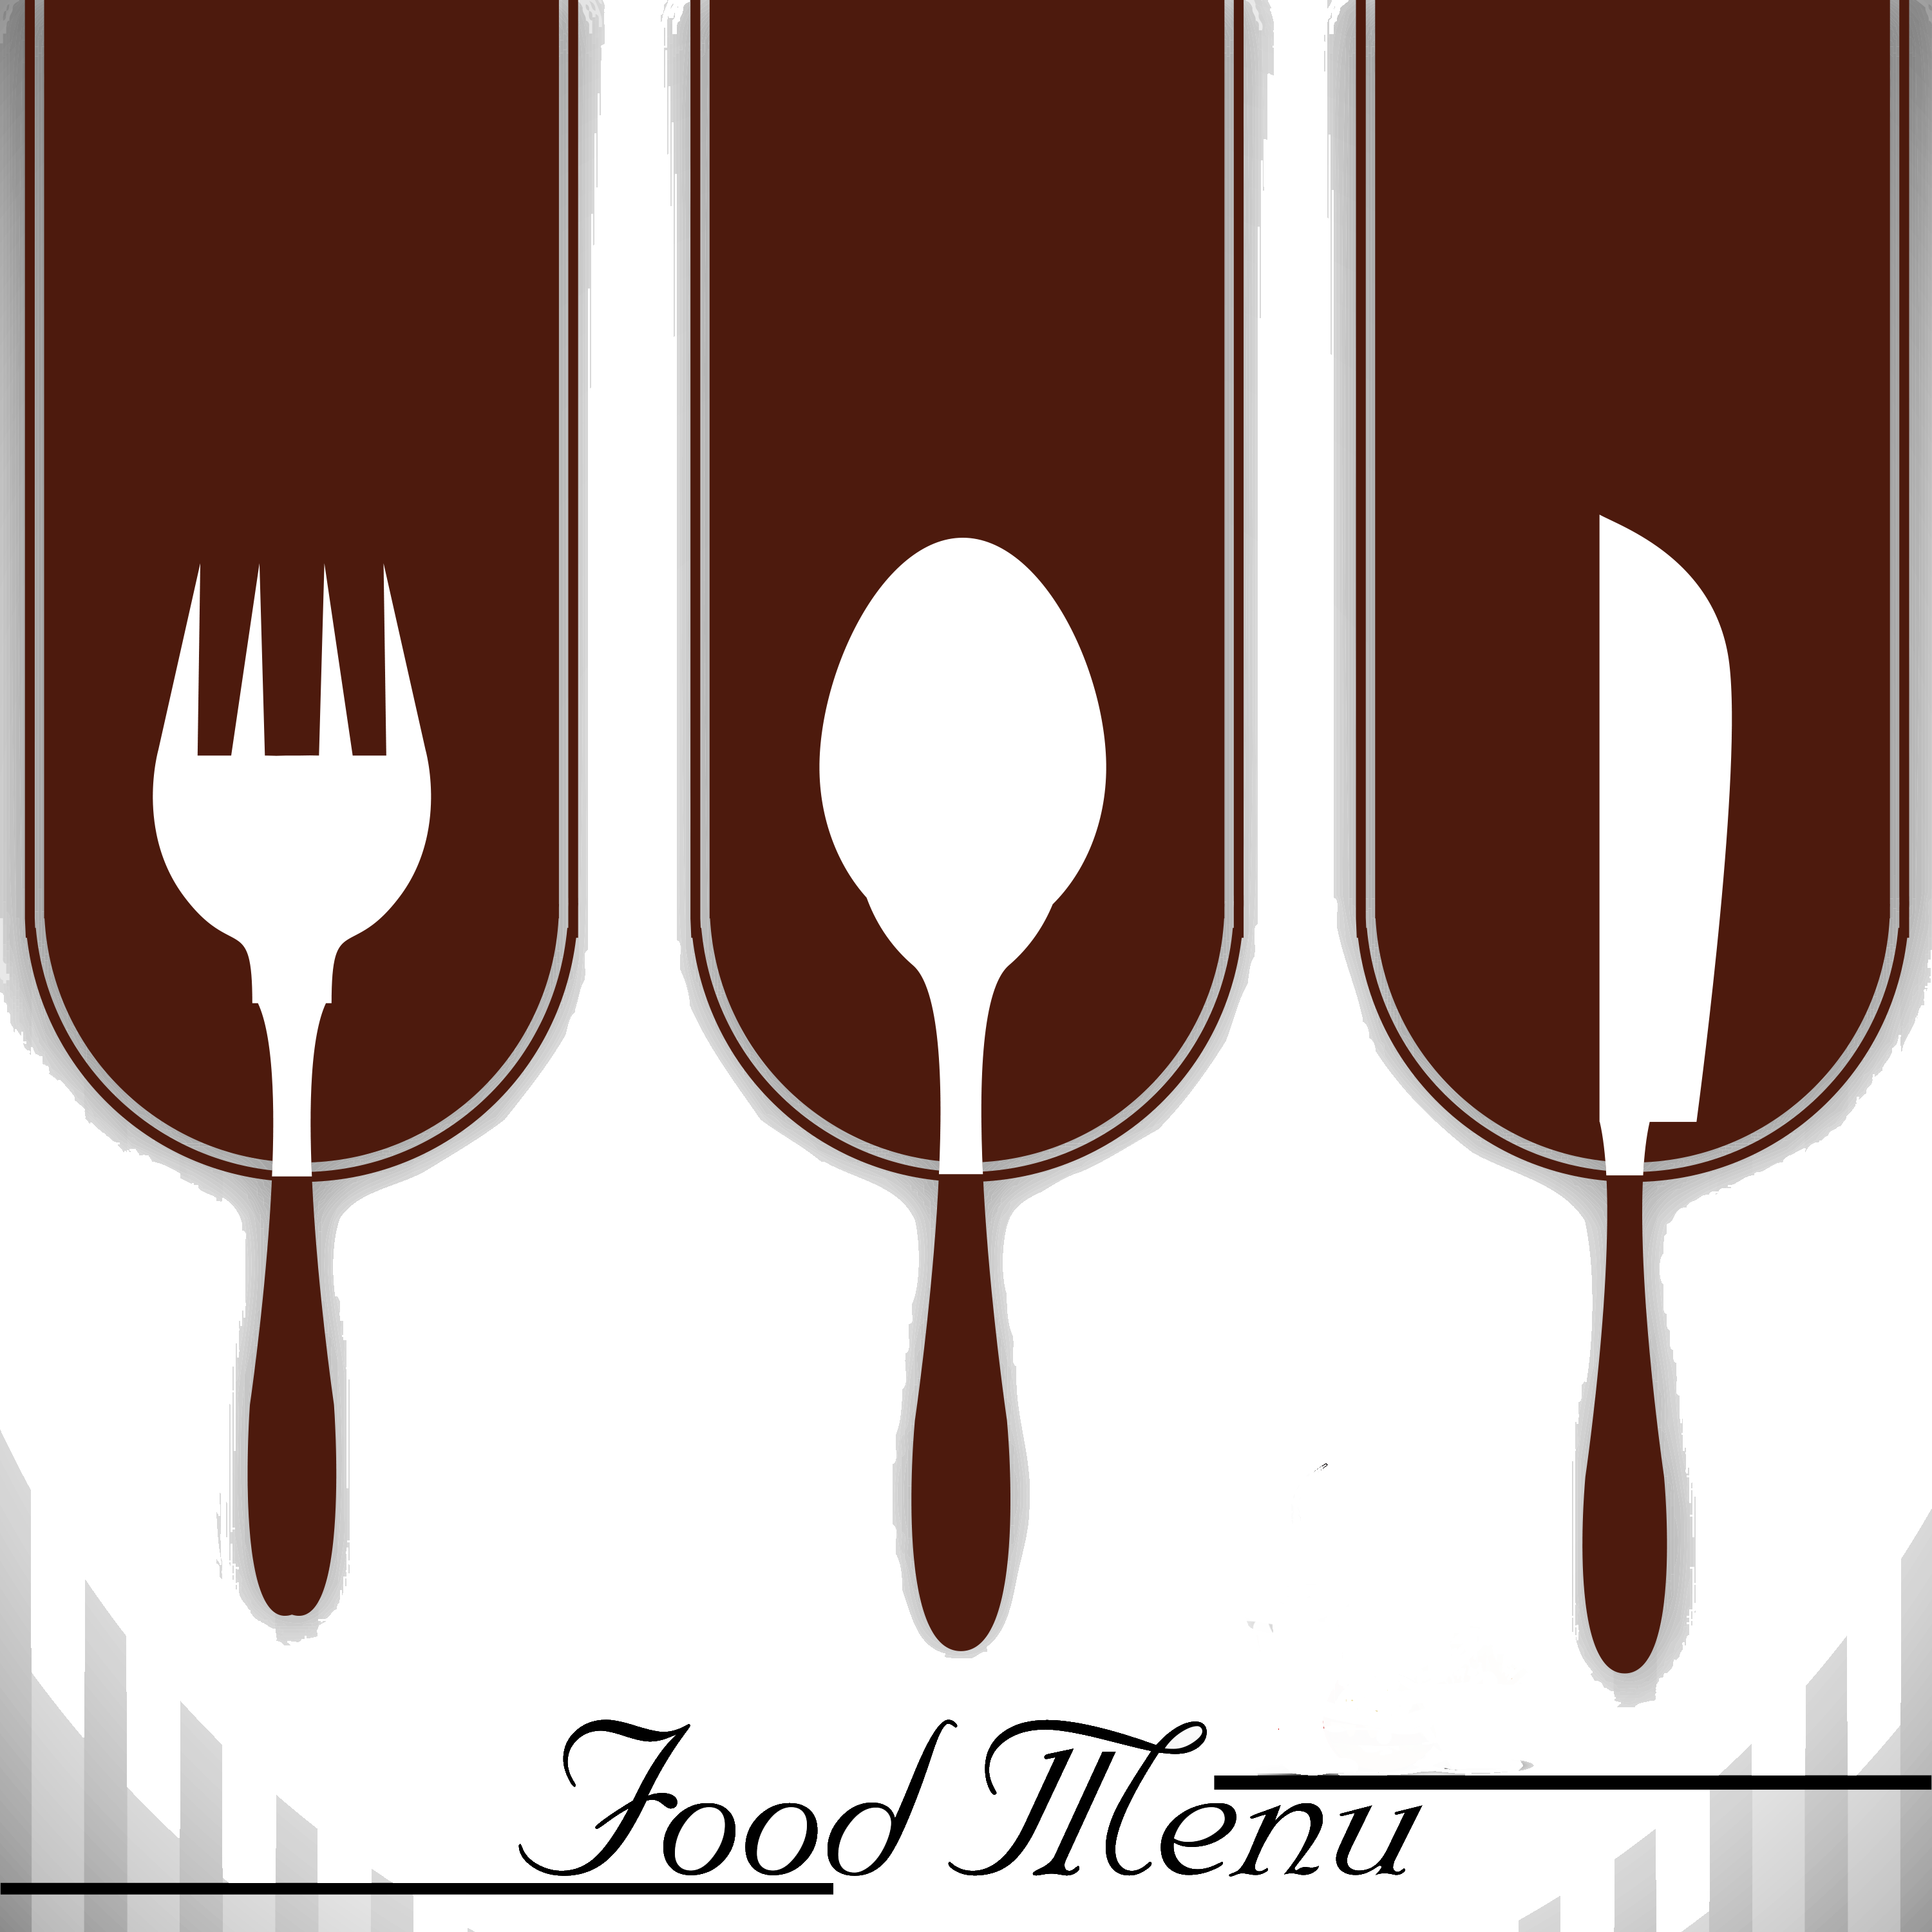 Cutlery vector culinary. Steak lobster at the